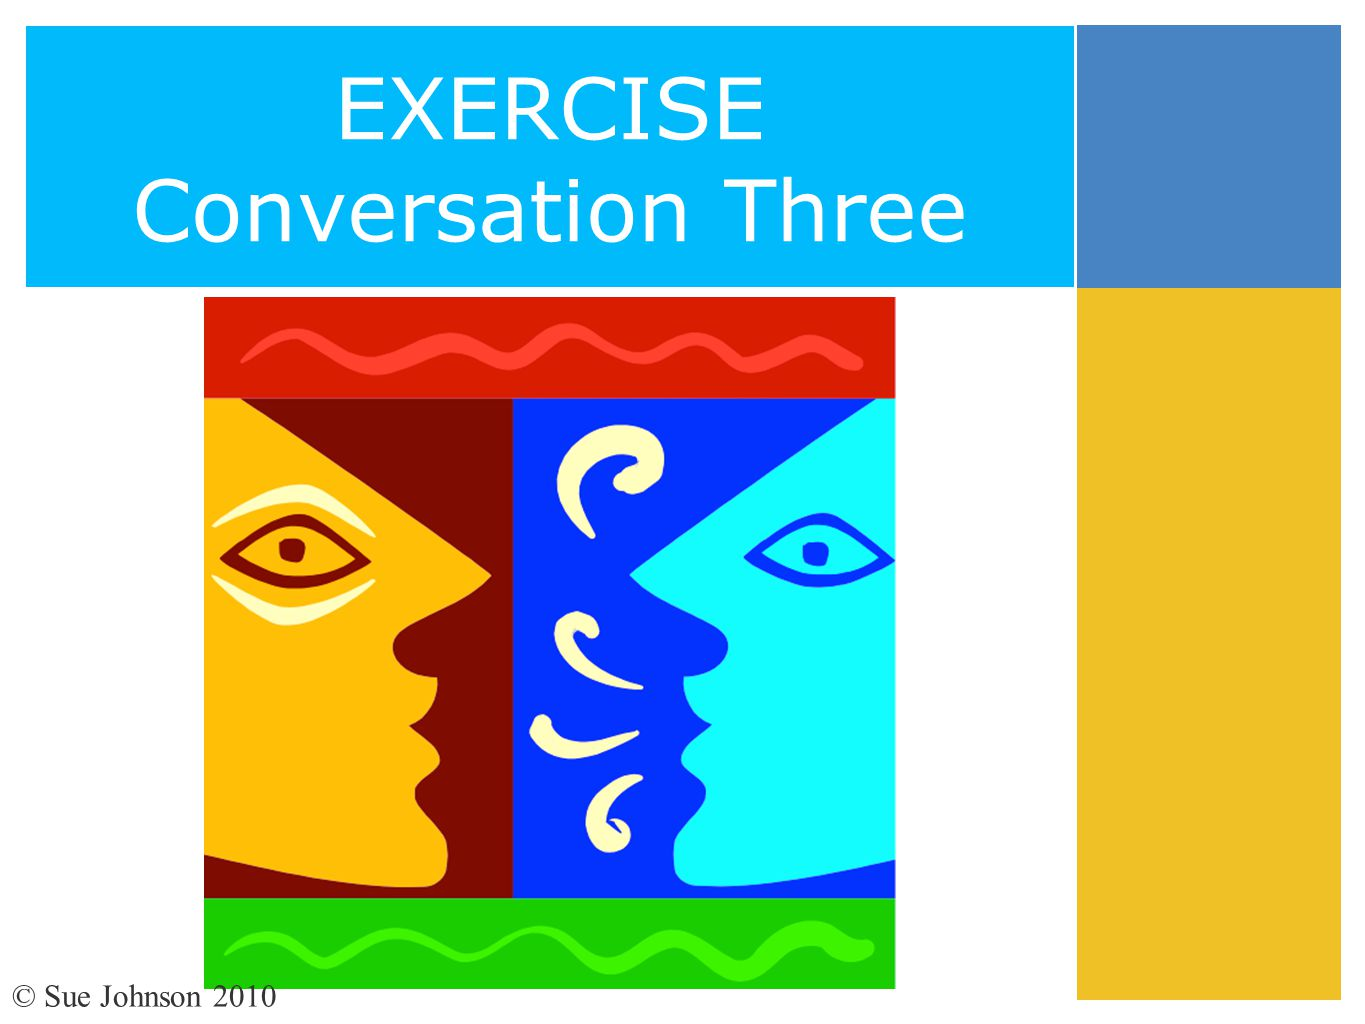 EXERCISE Conversation Three